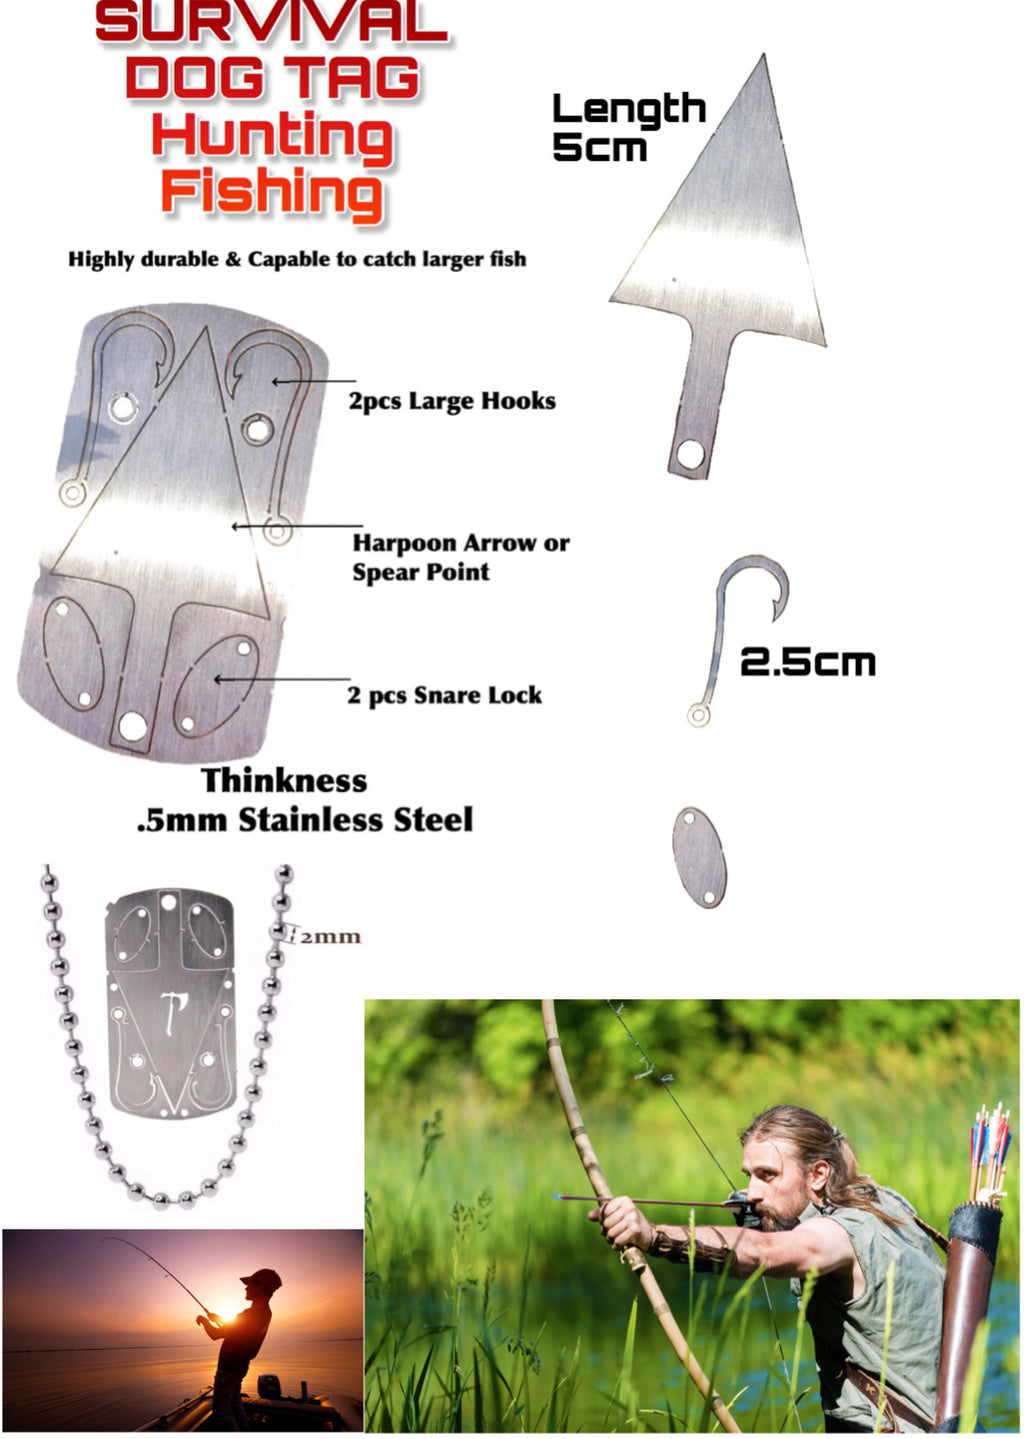 Survival Dog Tag Necklace Hunting Arrow Fishing Hooks Snare Locks Multi Tool - Outback Tactical